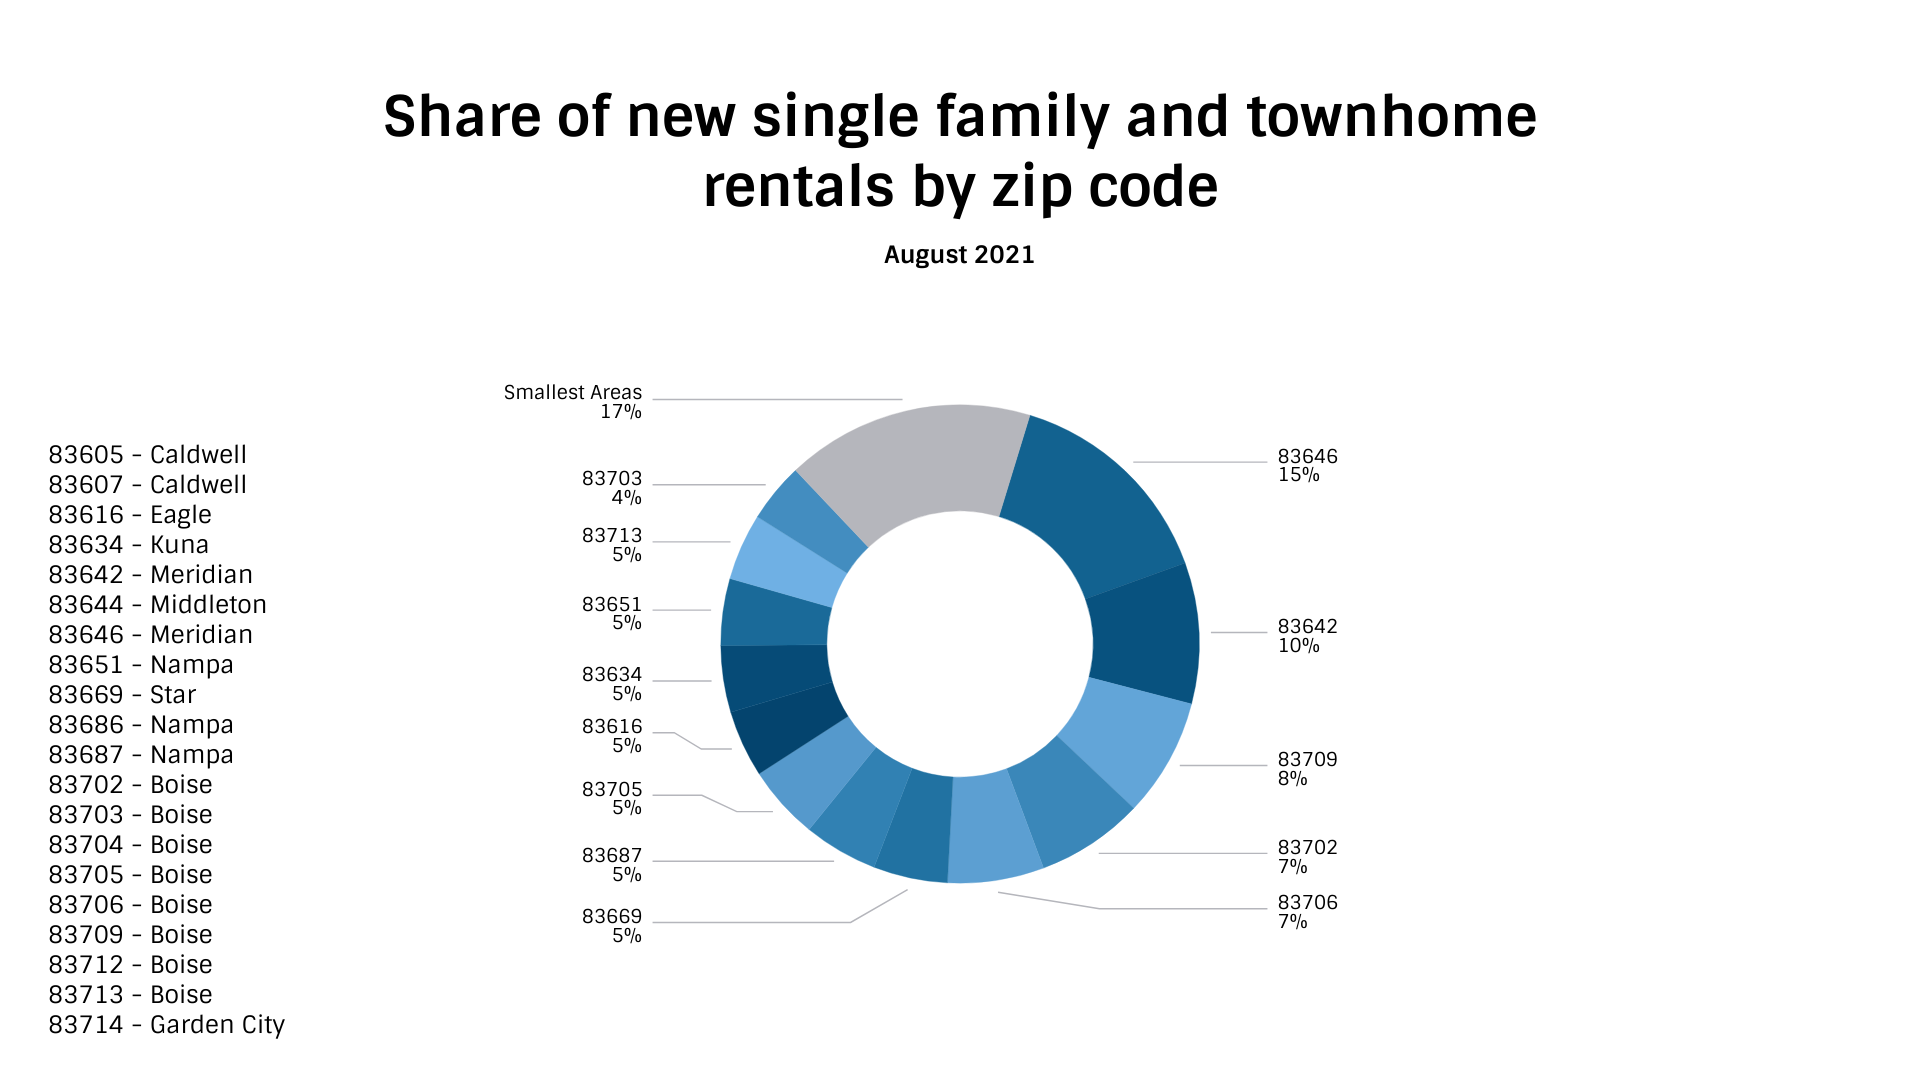 Share of new single family and townhome rentals by zip code (2)